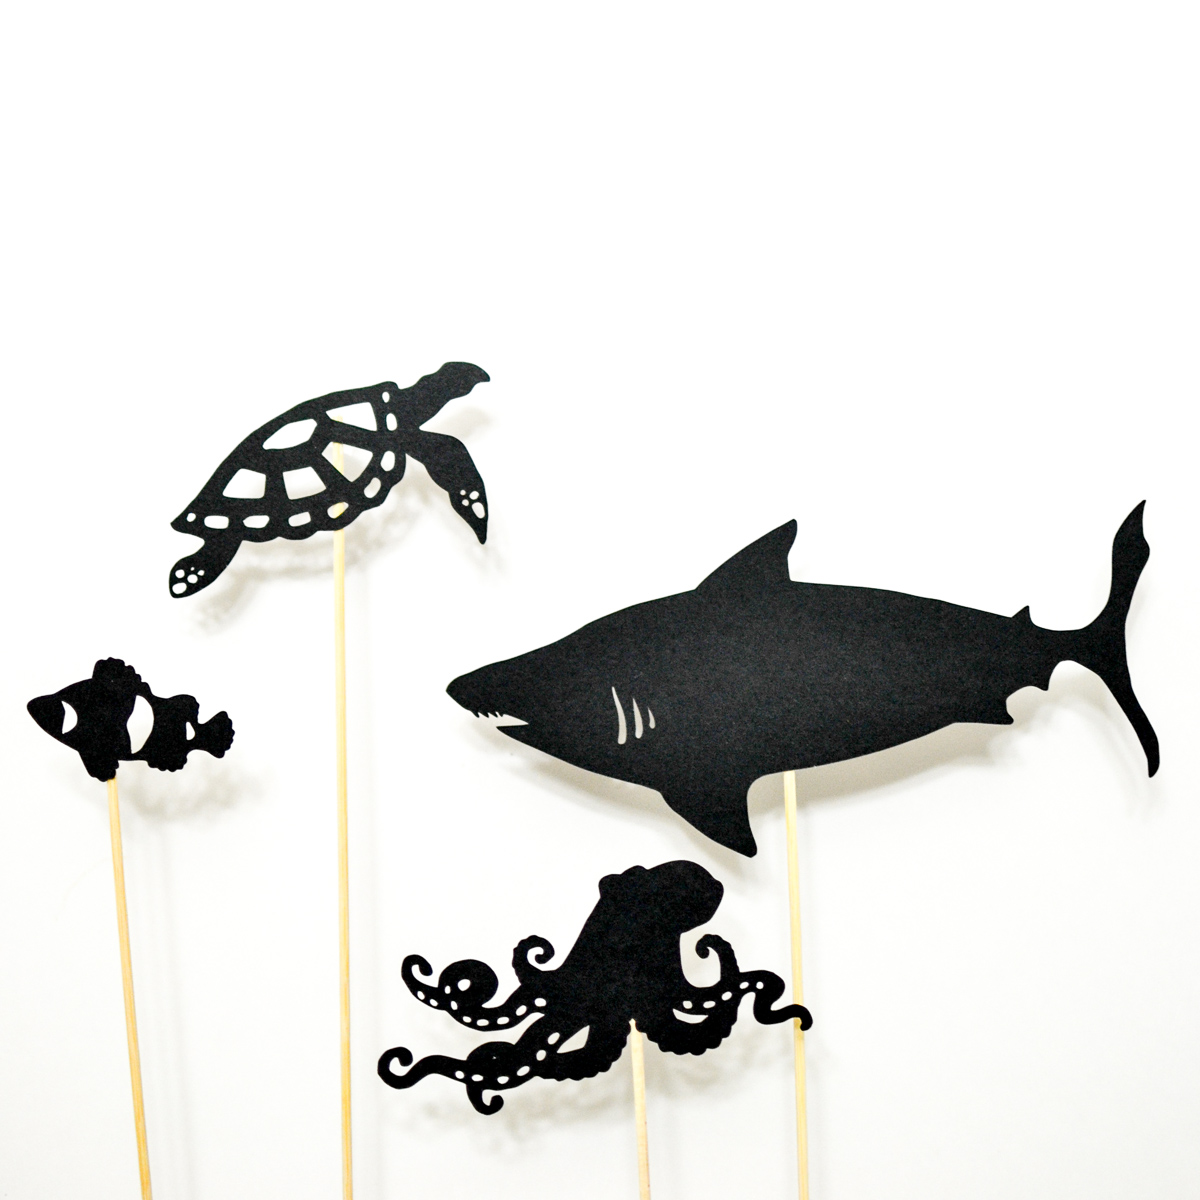 Ocean life shadow puppet printables adventure in a box for Free shadow puppet templates